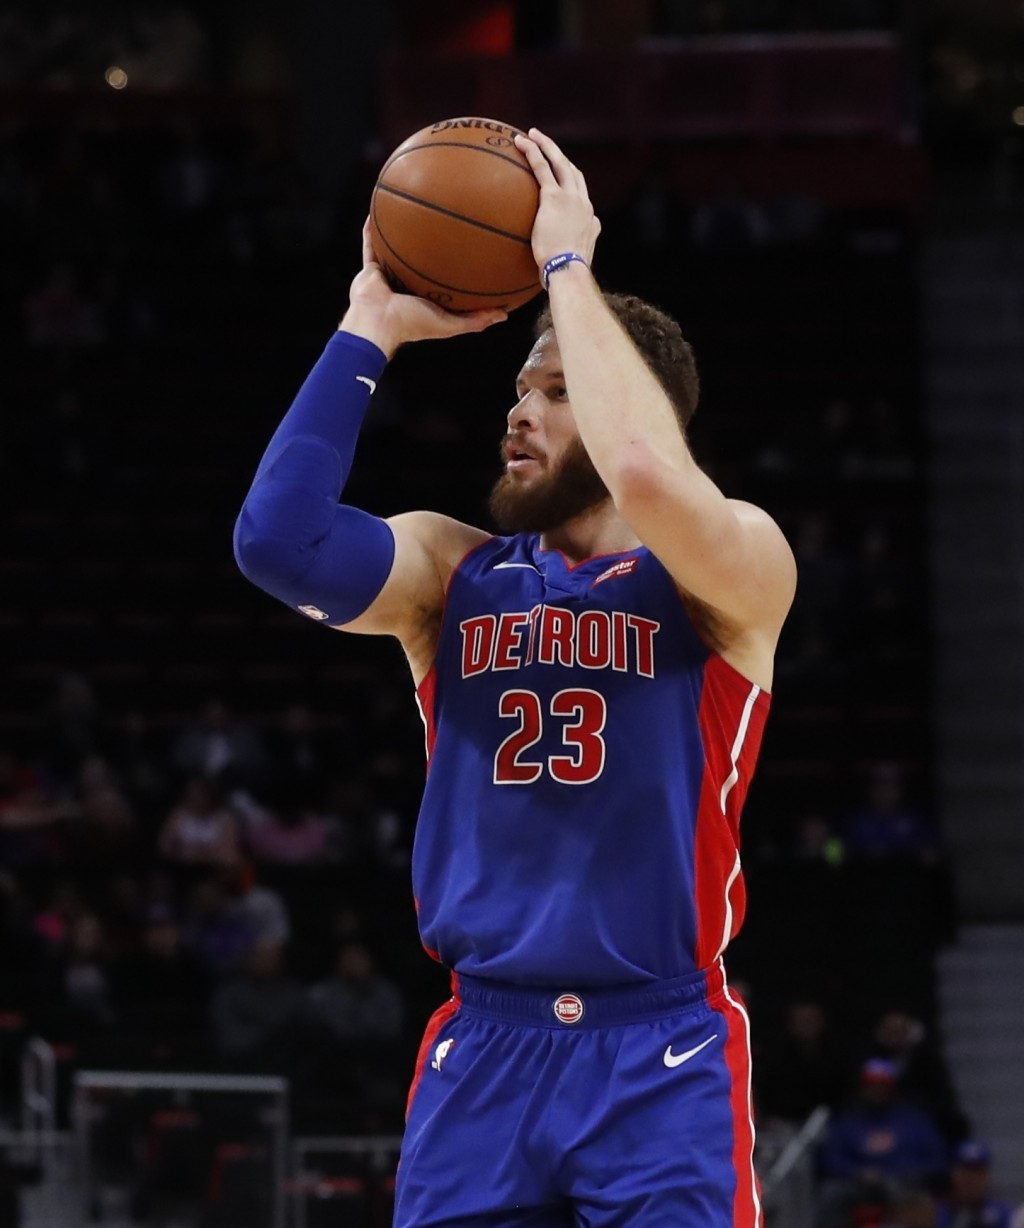 Detroit Pistons forward Blake Griffin shoots during the first half of an NBA basketball game against the Washington Wizards, Monday, Feb. 11, 2019, in...